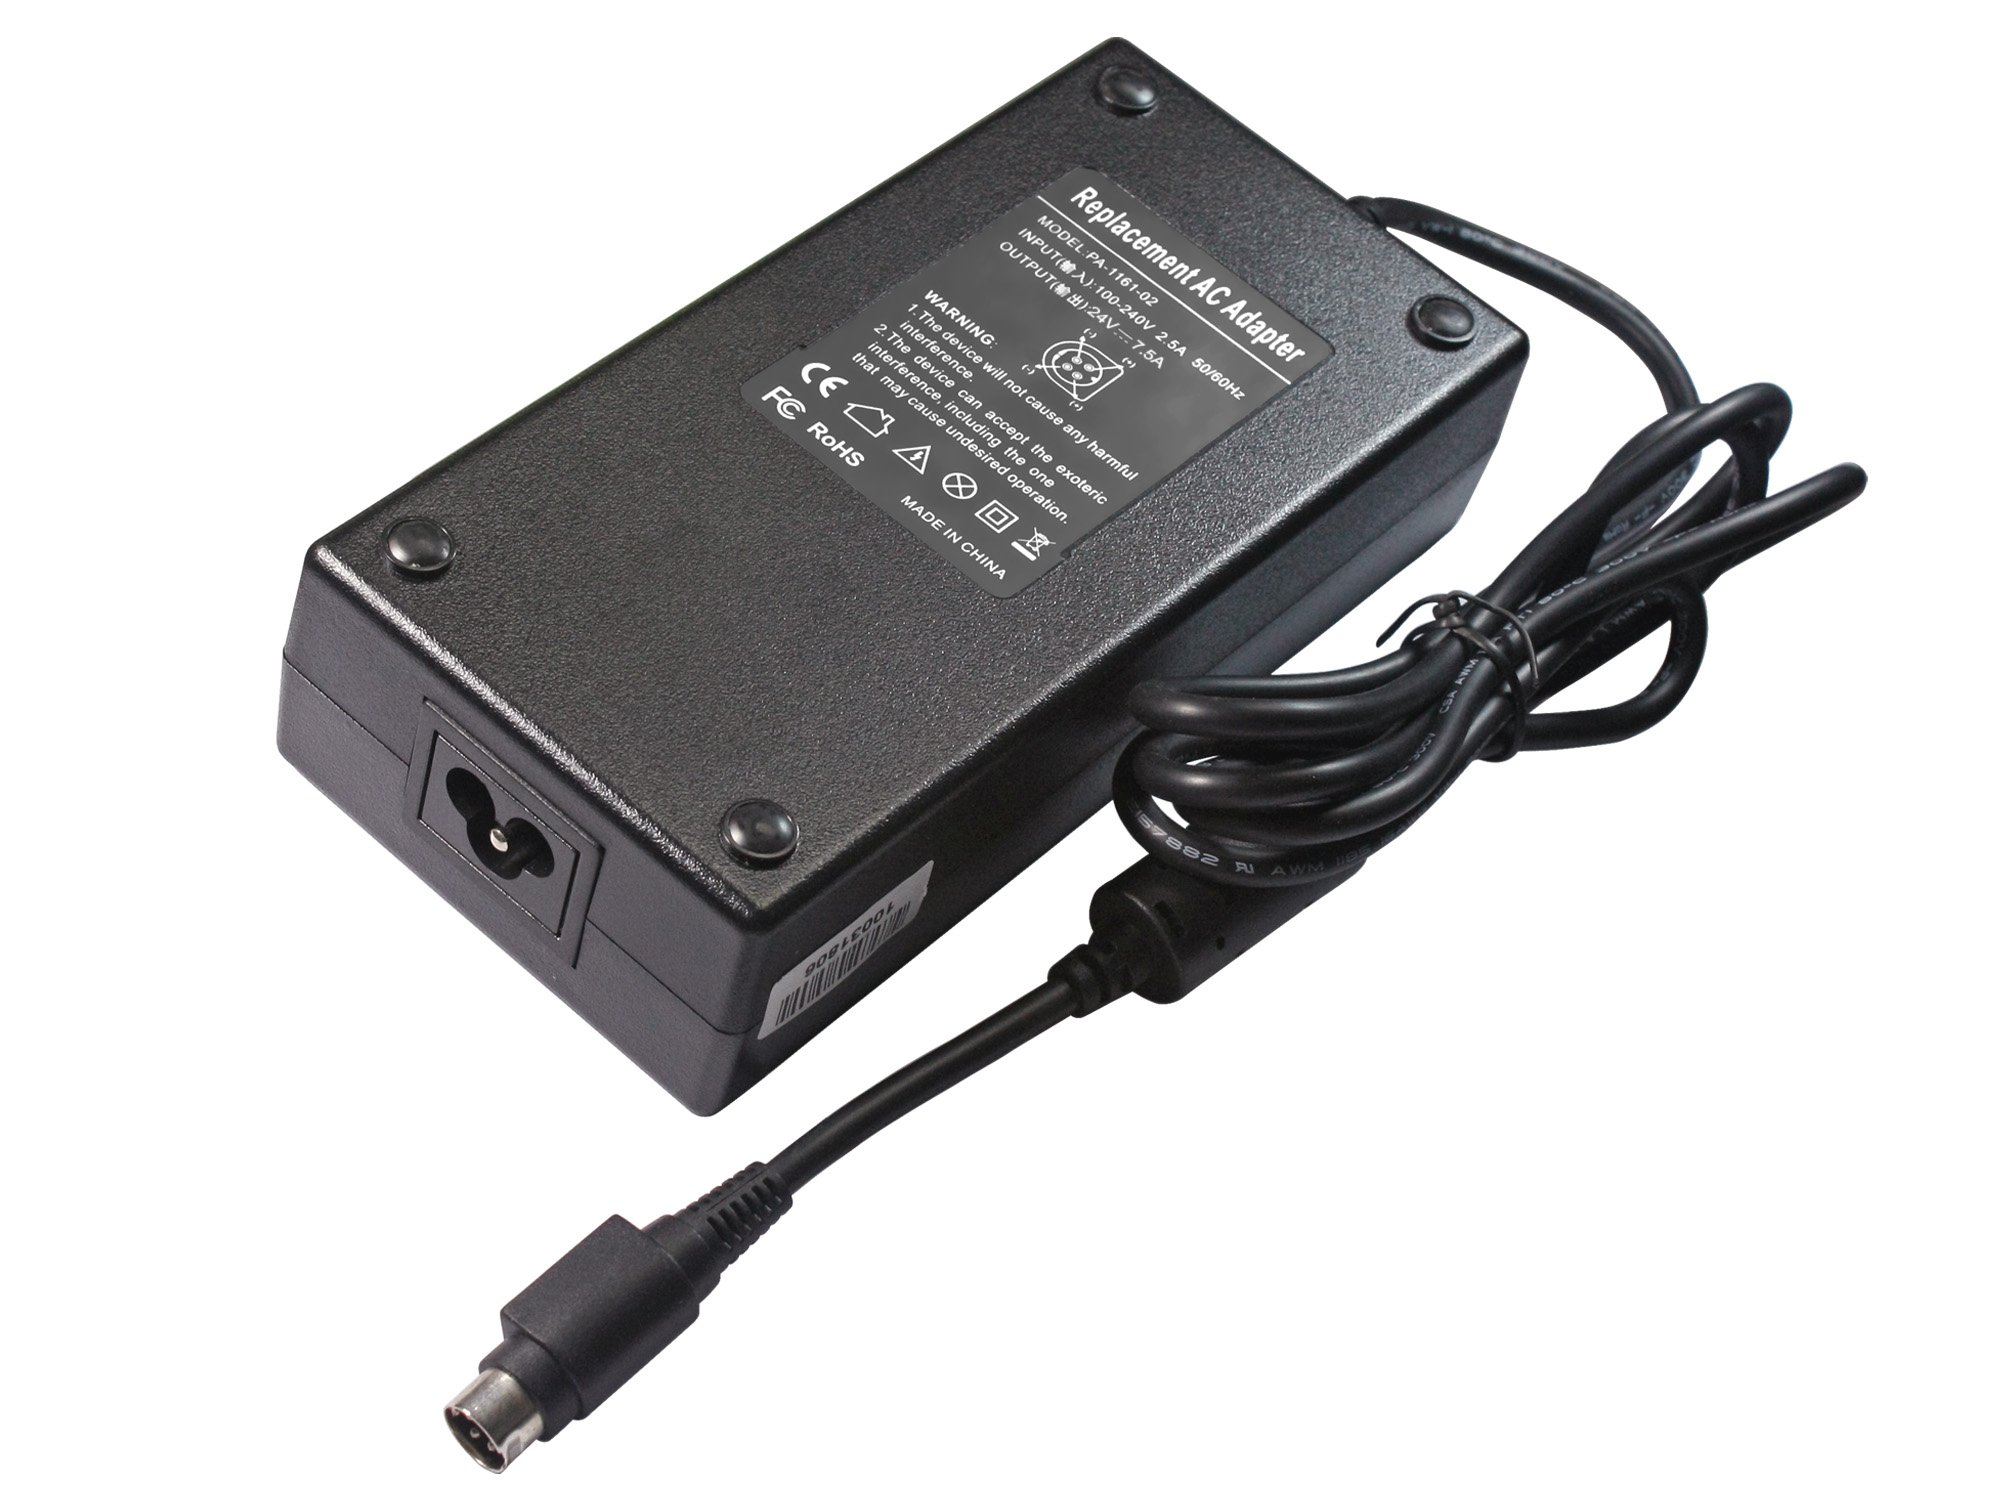 replacement AC/DC power adapters for laptops from 29.99 & up